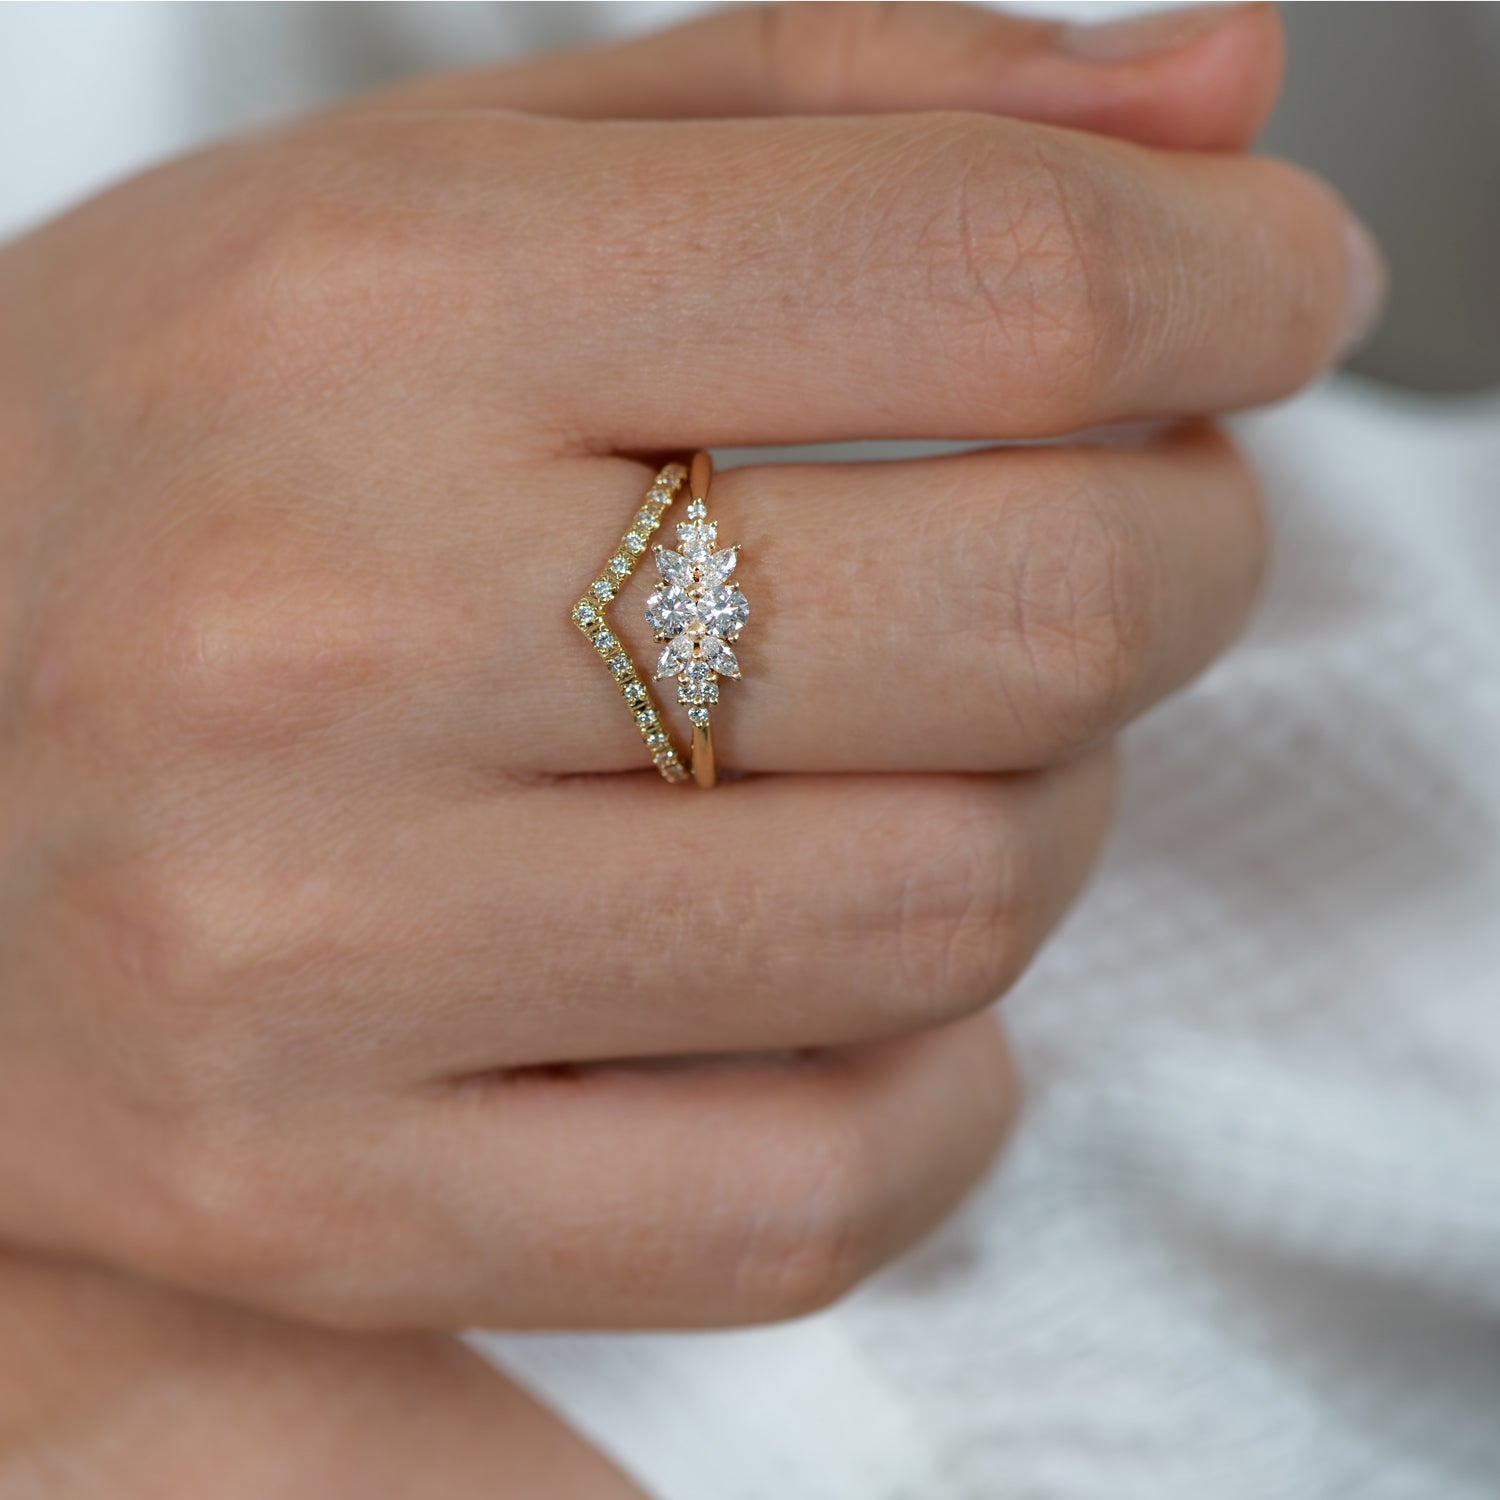 Engagement-Ring-with-a-Cluster-of-Diamonds-Small-Flora-Ring-top-shot-close-up